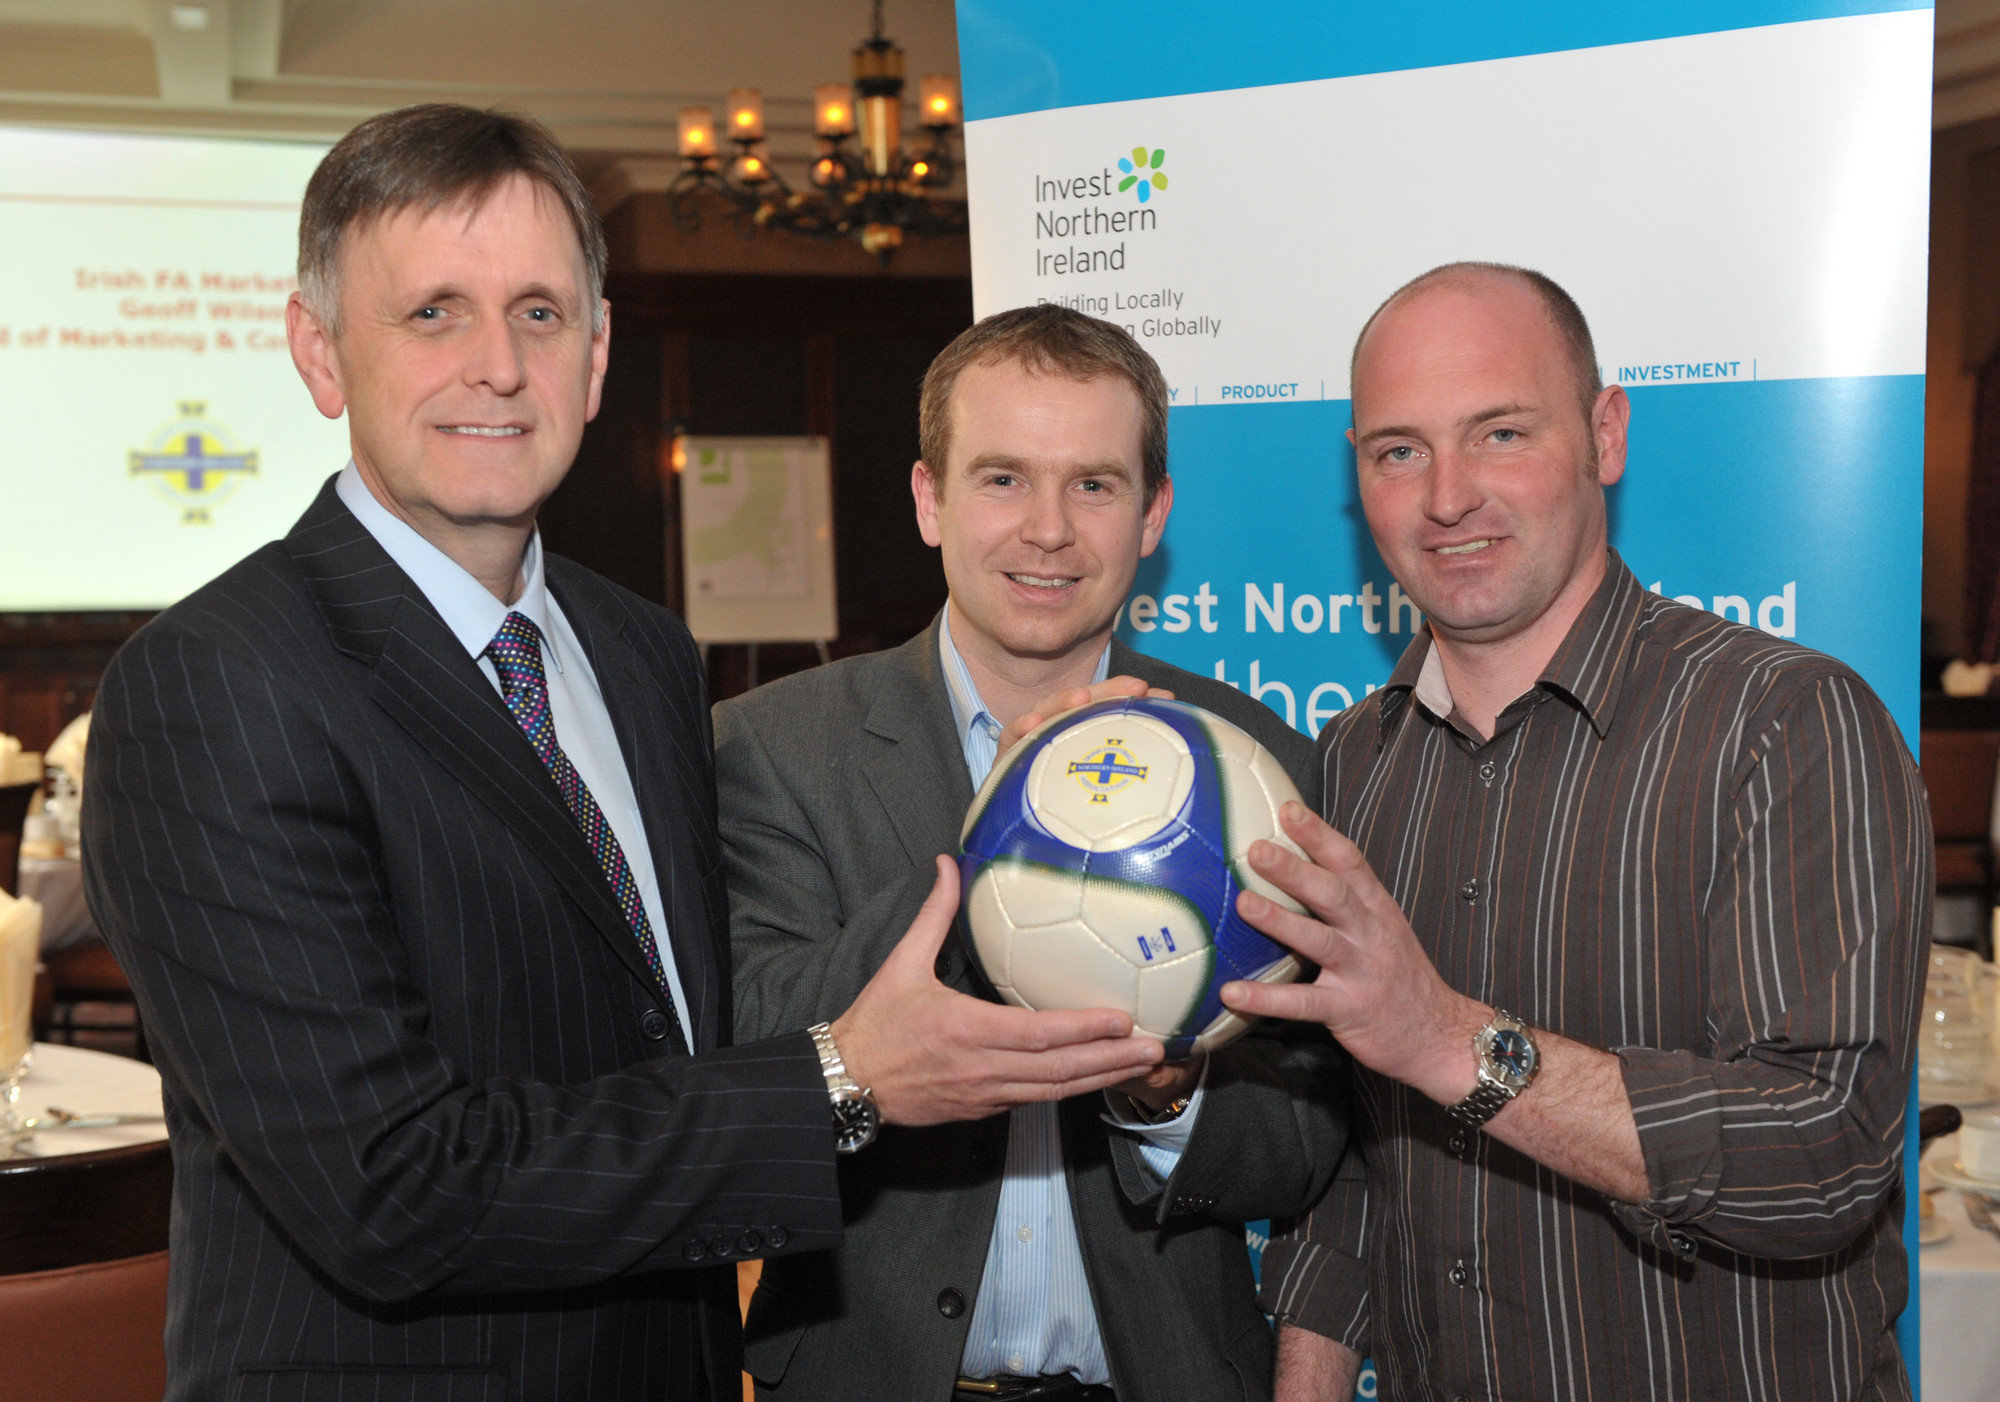 13668-export-networking-newry-3-march-newrymourne.jpg